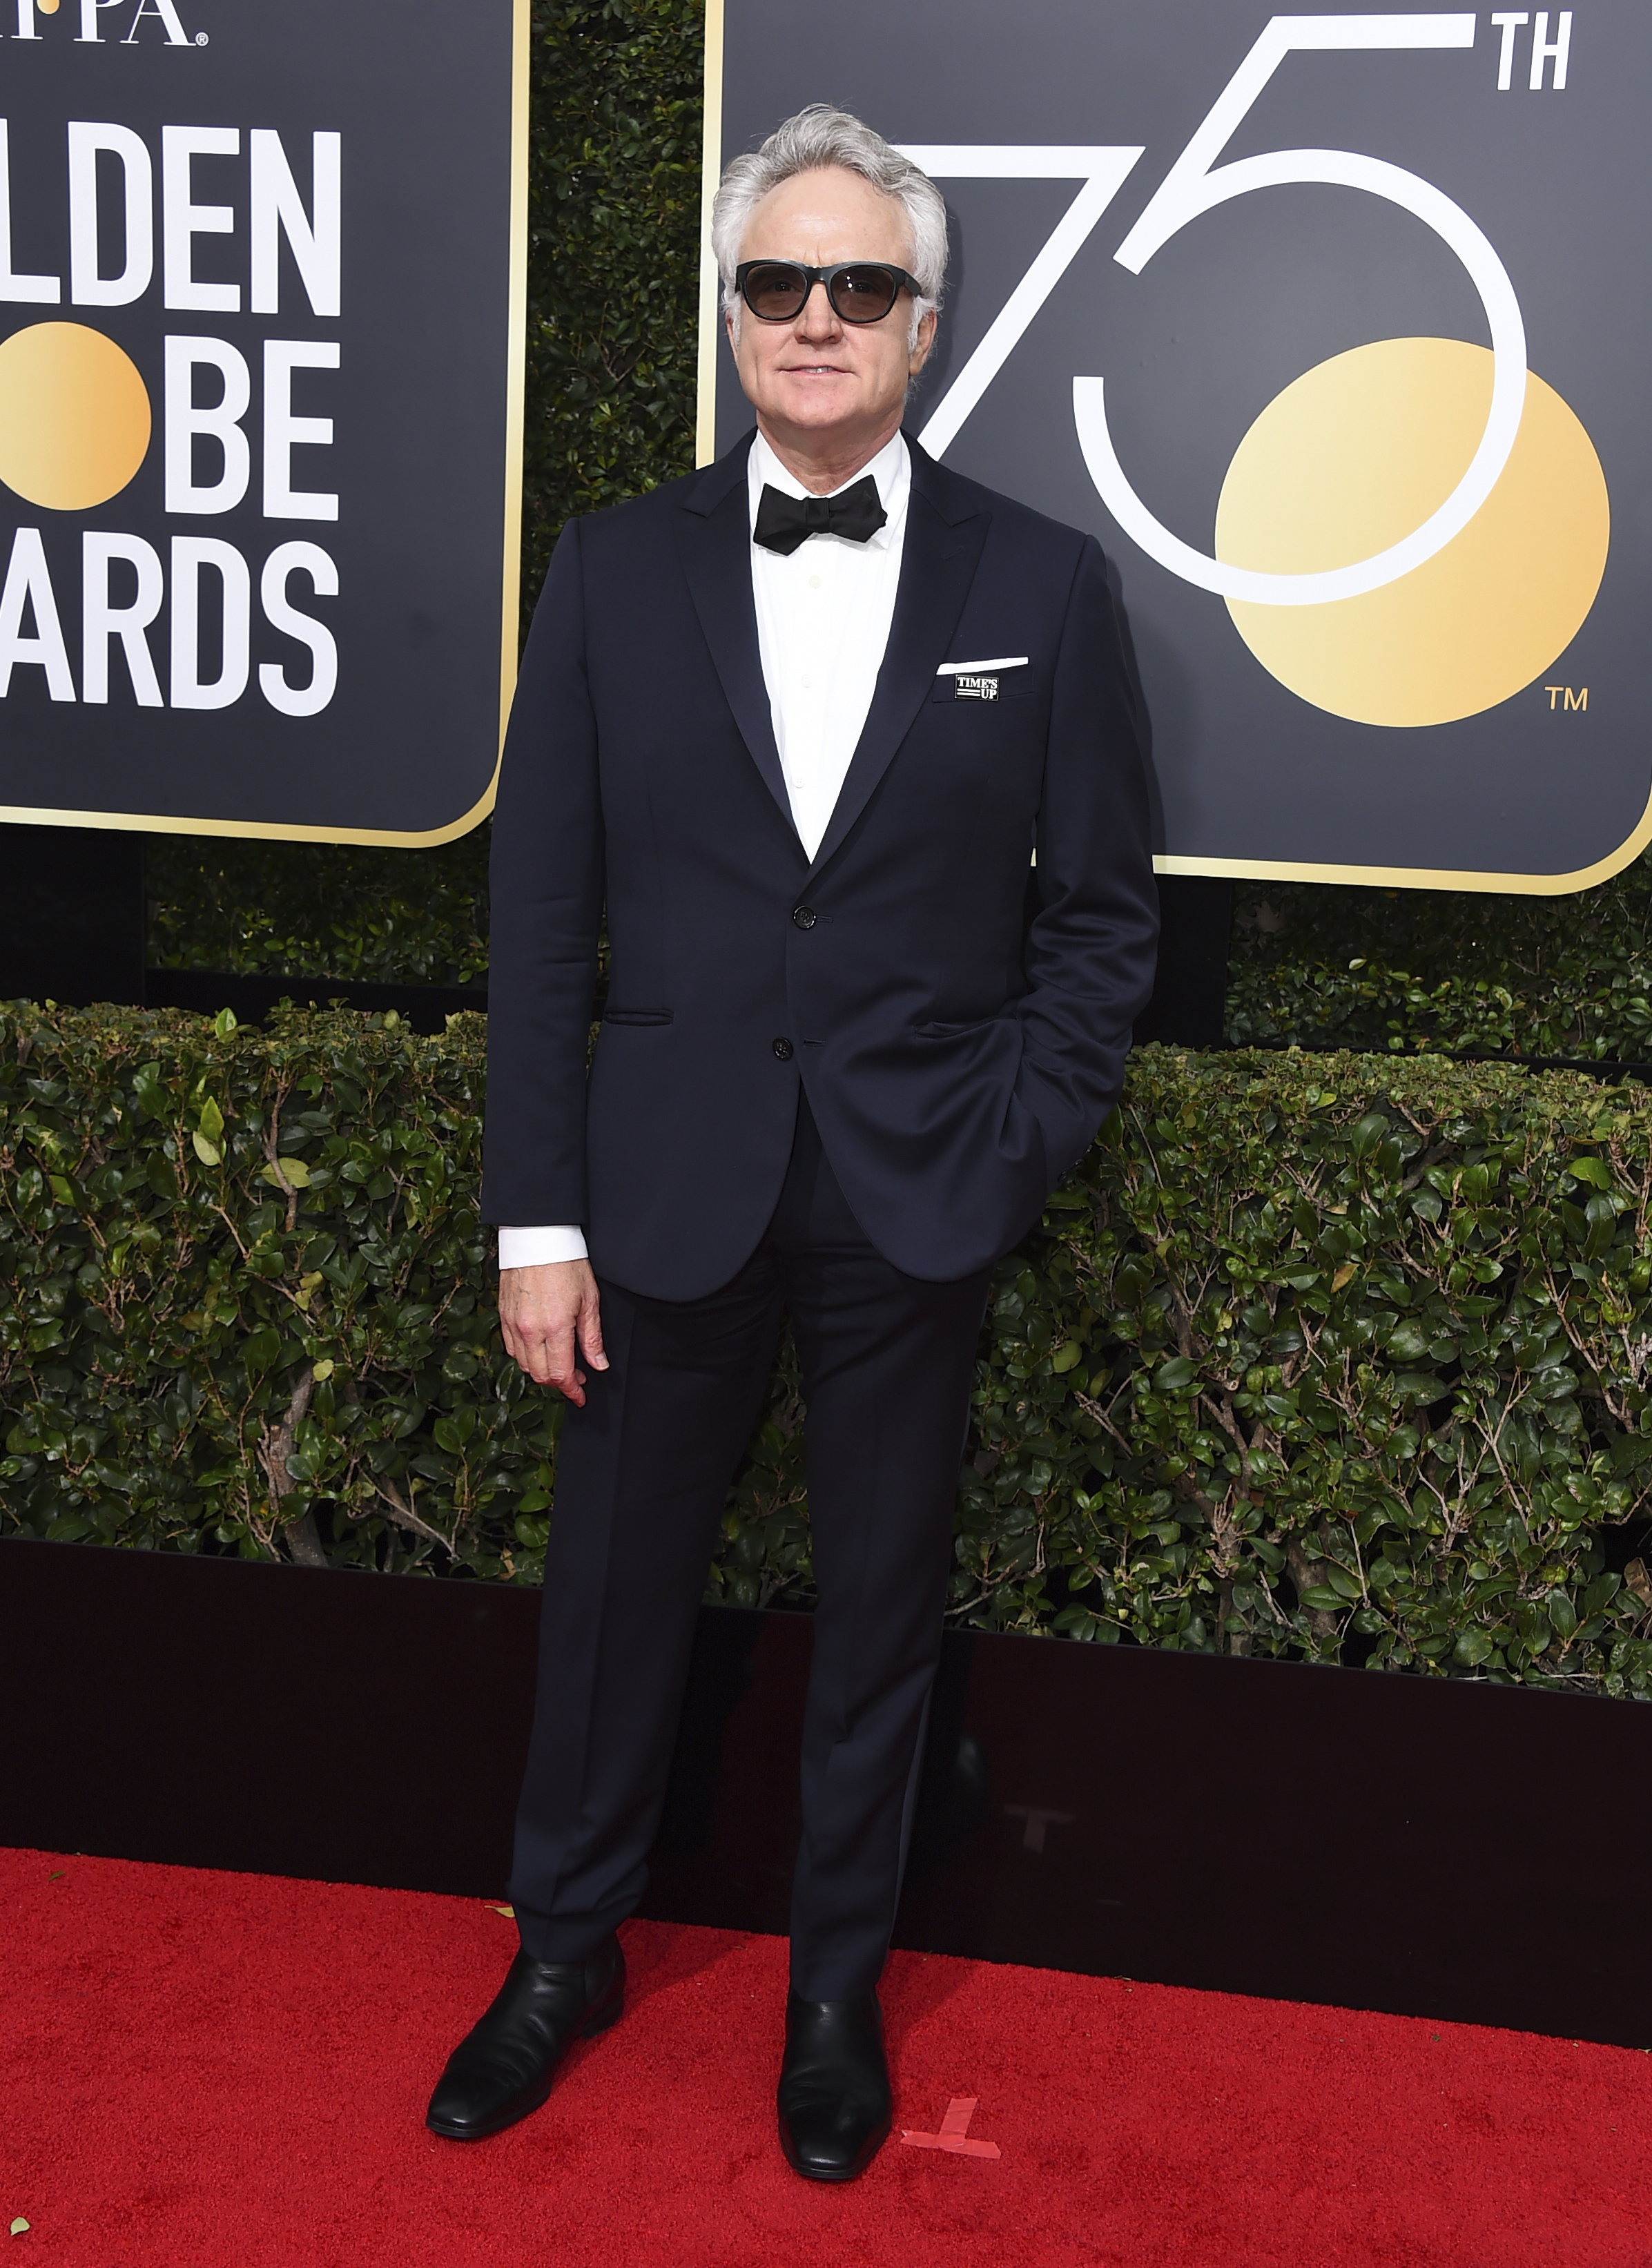 <div class='meta'><div class='origin-logo' data-origin='AP'></div><span class='caption-text' data-credit='Jordan Strauss/Invision/AP'>Bradley Whitford arrives at the 75th annual Golden Globe Awards at the Beverly Hilton Hotel on Sunday, Jan. 7, 2018, in Beverly Hills, Calif.</span></div>